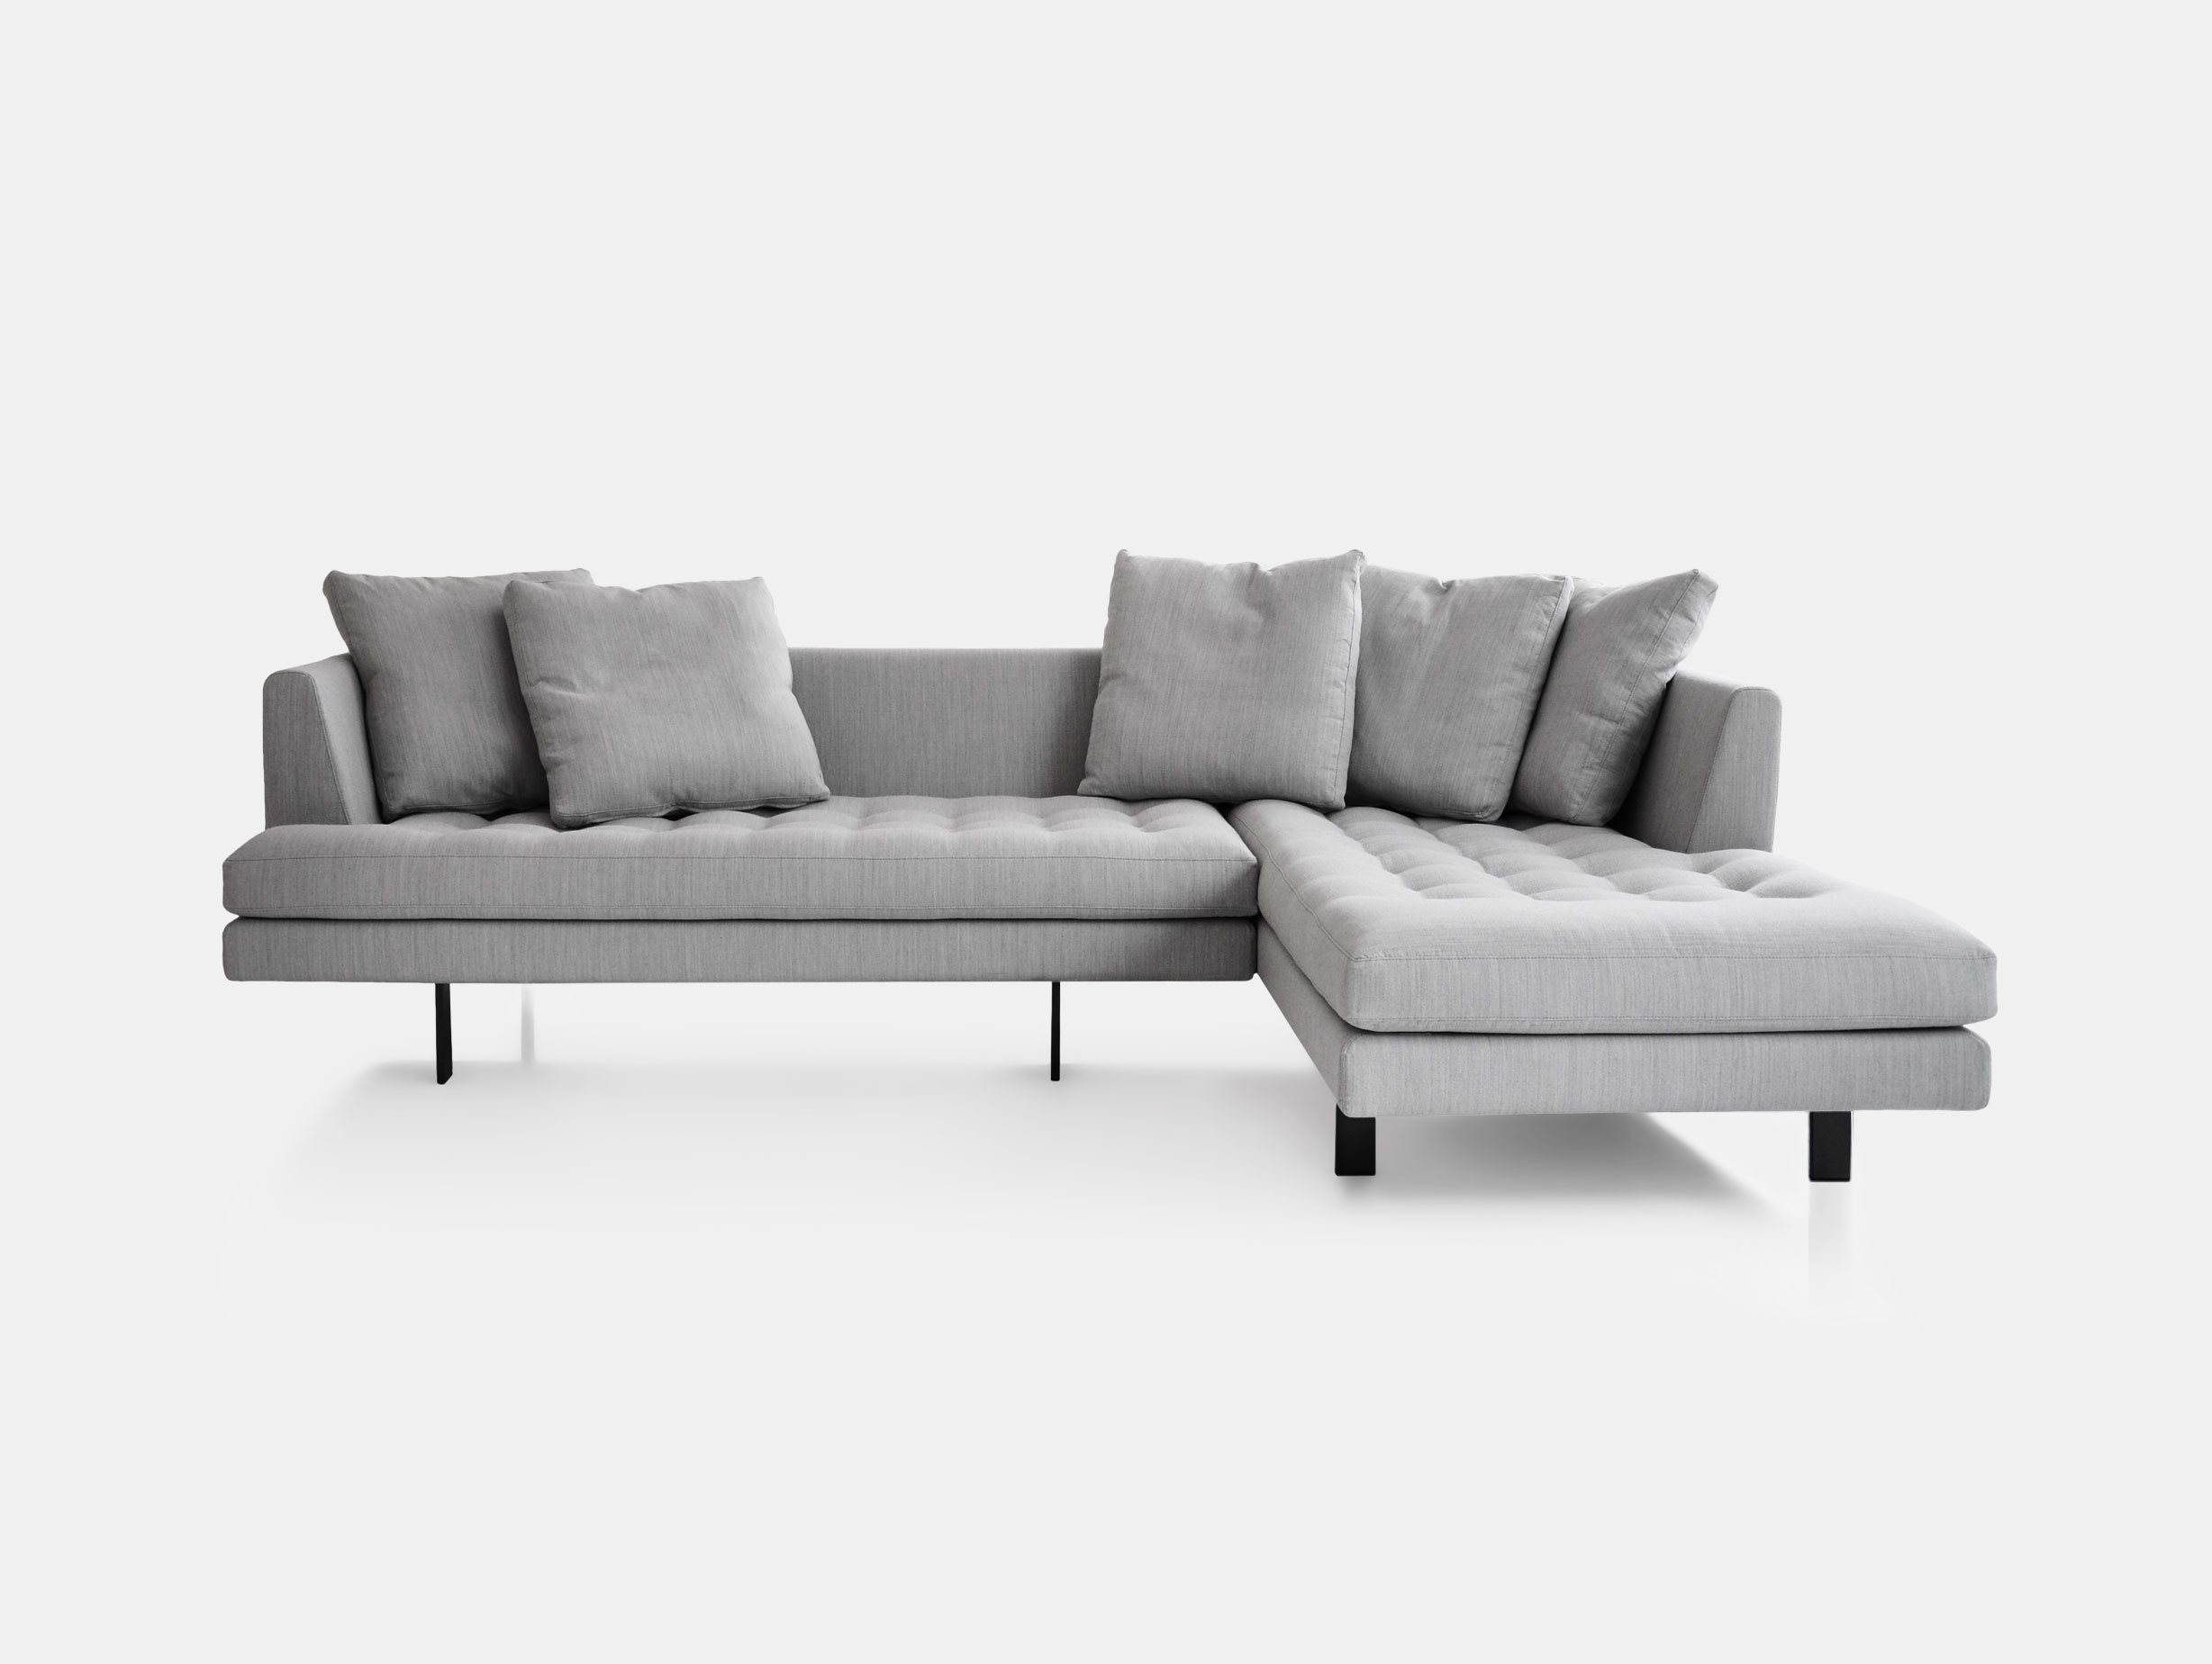 Bensen Edward Sectional Sofa L 265 Right Chaise